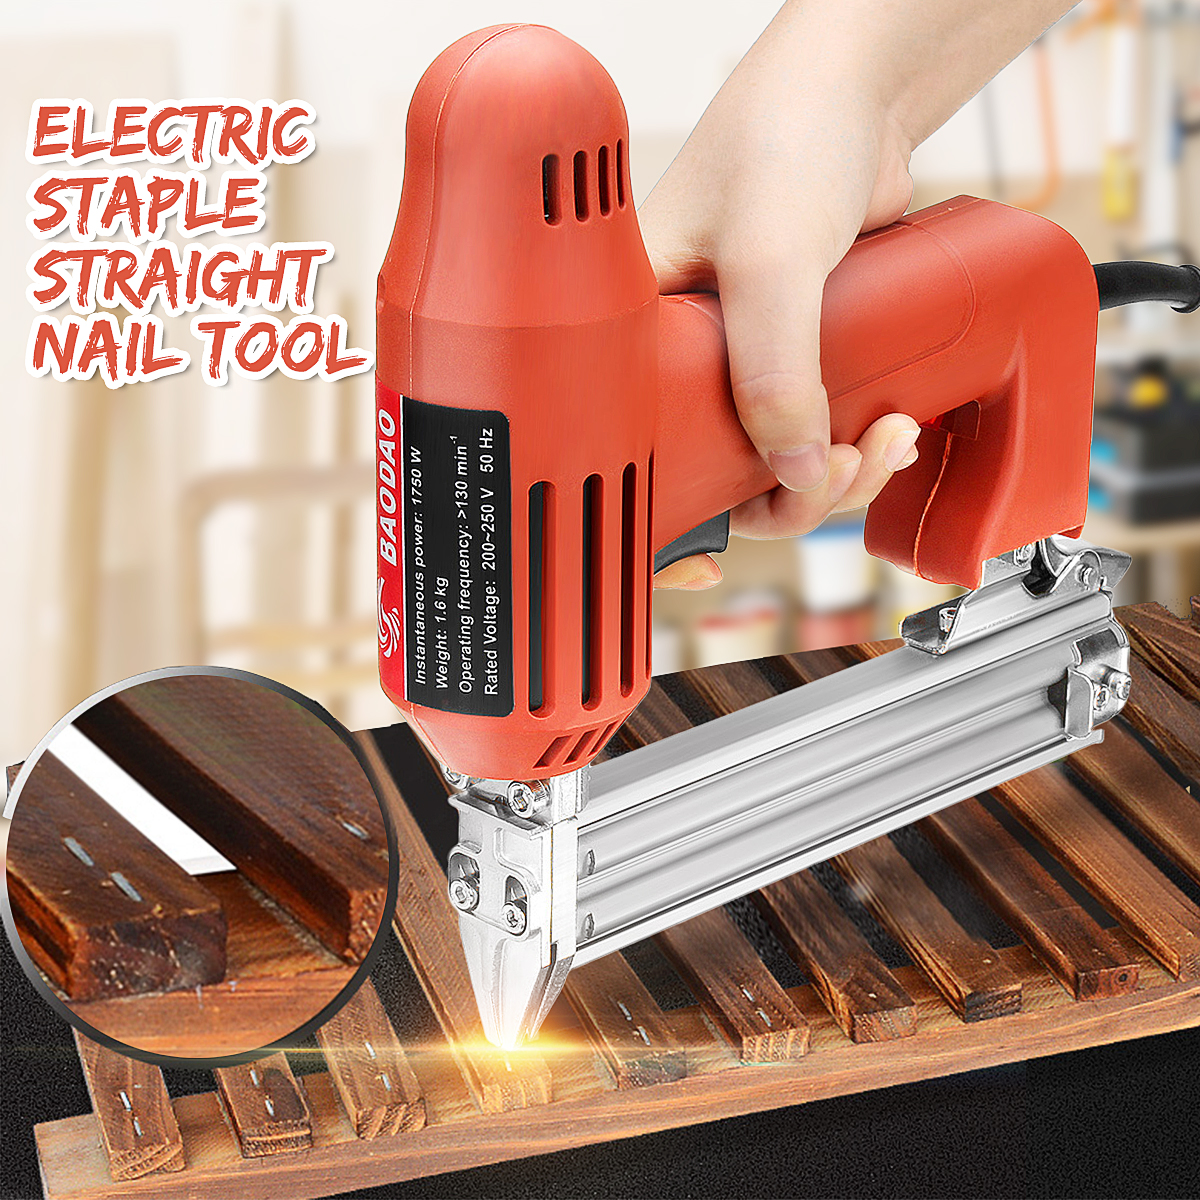 220V 1800W Nail Staple Guns Electric Nailer 10-30mm Straight Woodworking Tool Light Weight Portable 60/min Firing Speed Rate220V 1800W Nail Staple Guns Electric Nailer 10-30mm Straight Woodworking Tool Light Weight Portable 60/min Firing Speed Rate